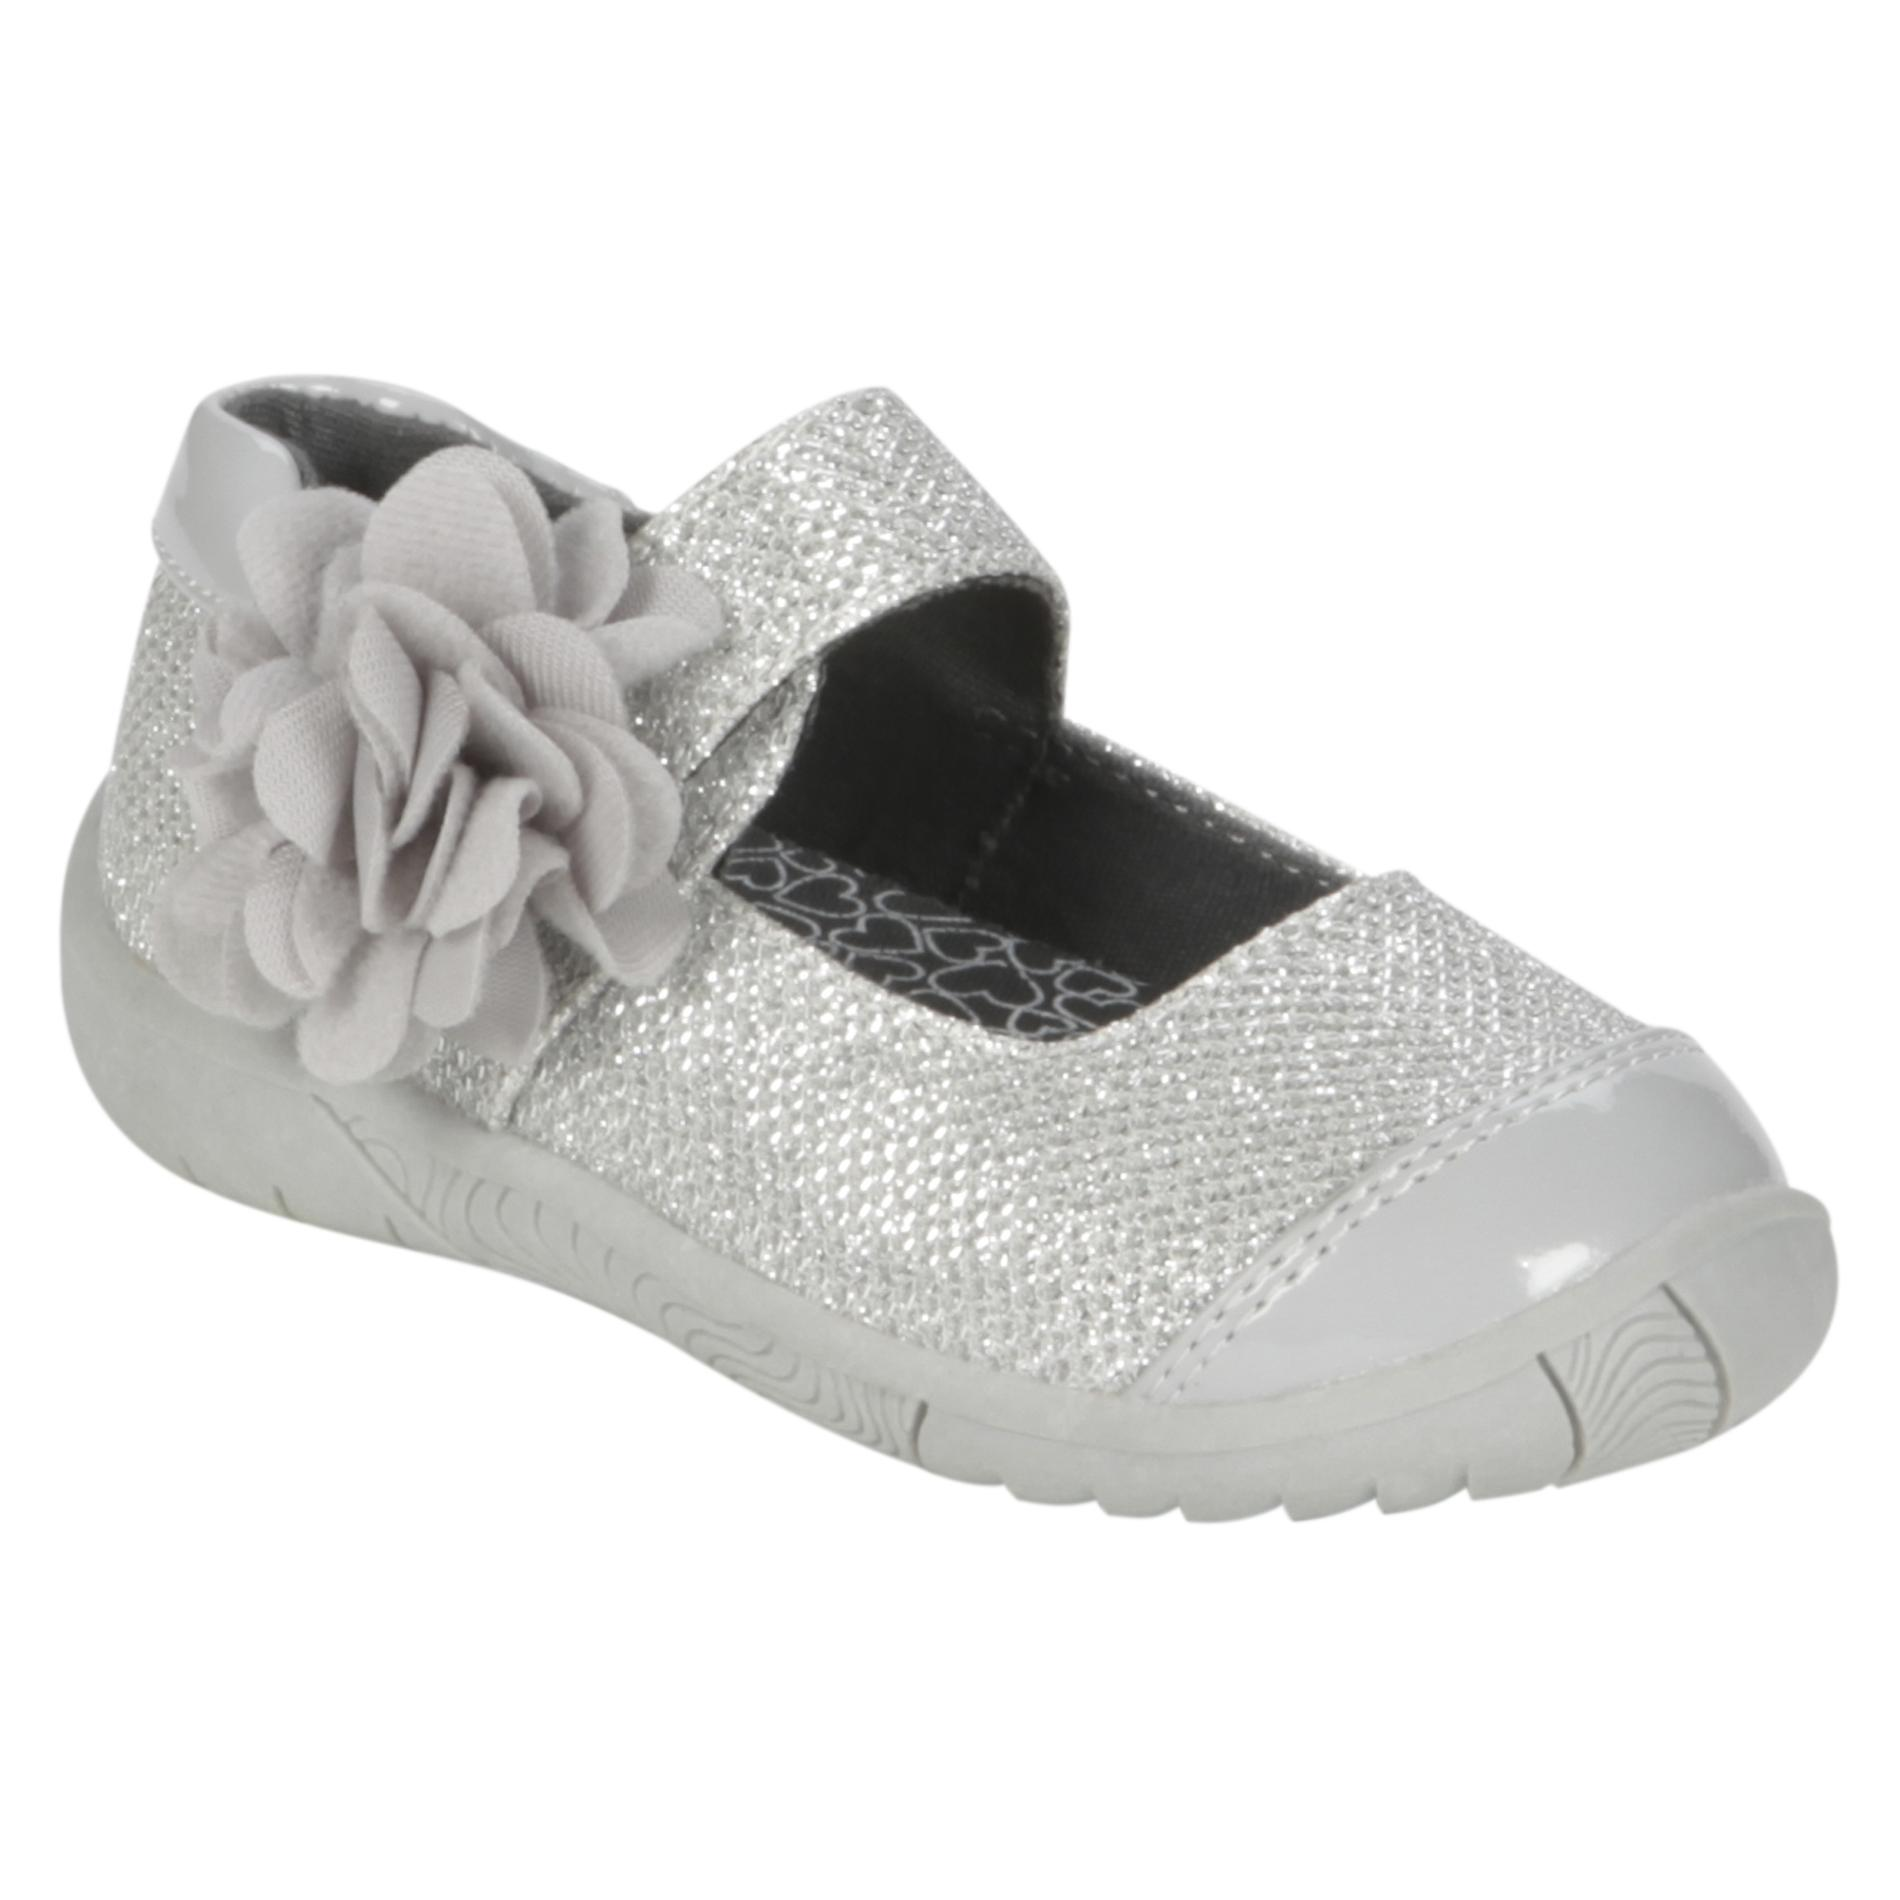 WonderKids  Toddler Girl's Glitter Maryjane Claire - Silver